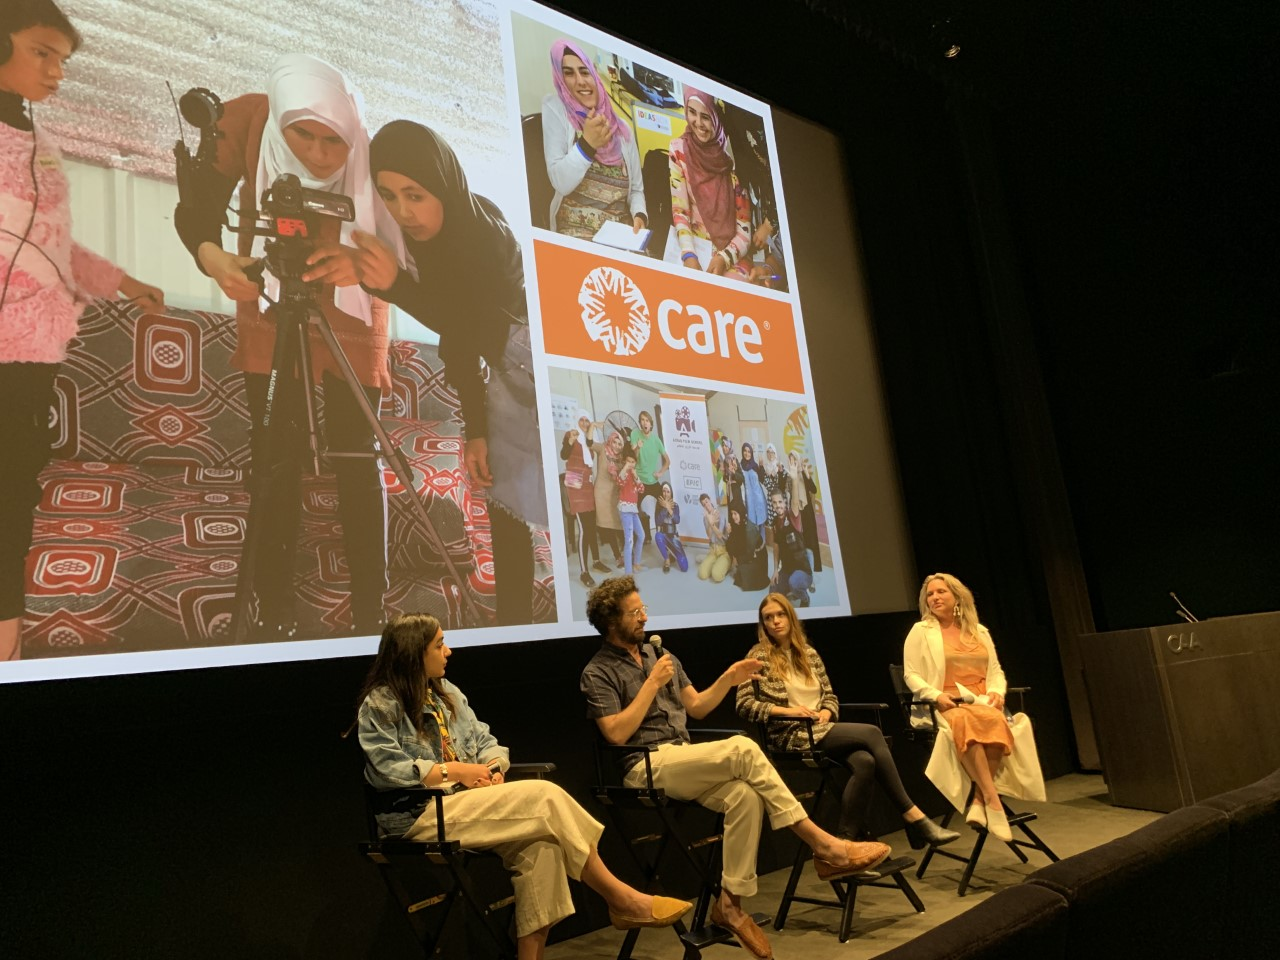 Four people sit on stage during a panel in front of a slide of images showing girls learning how to film with cameras.